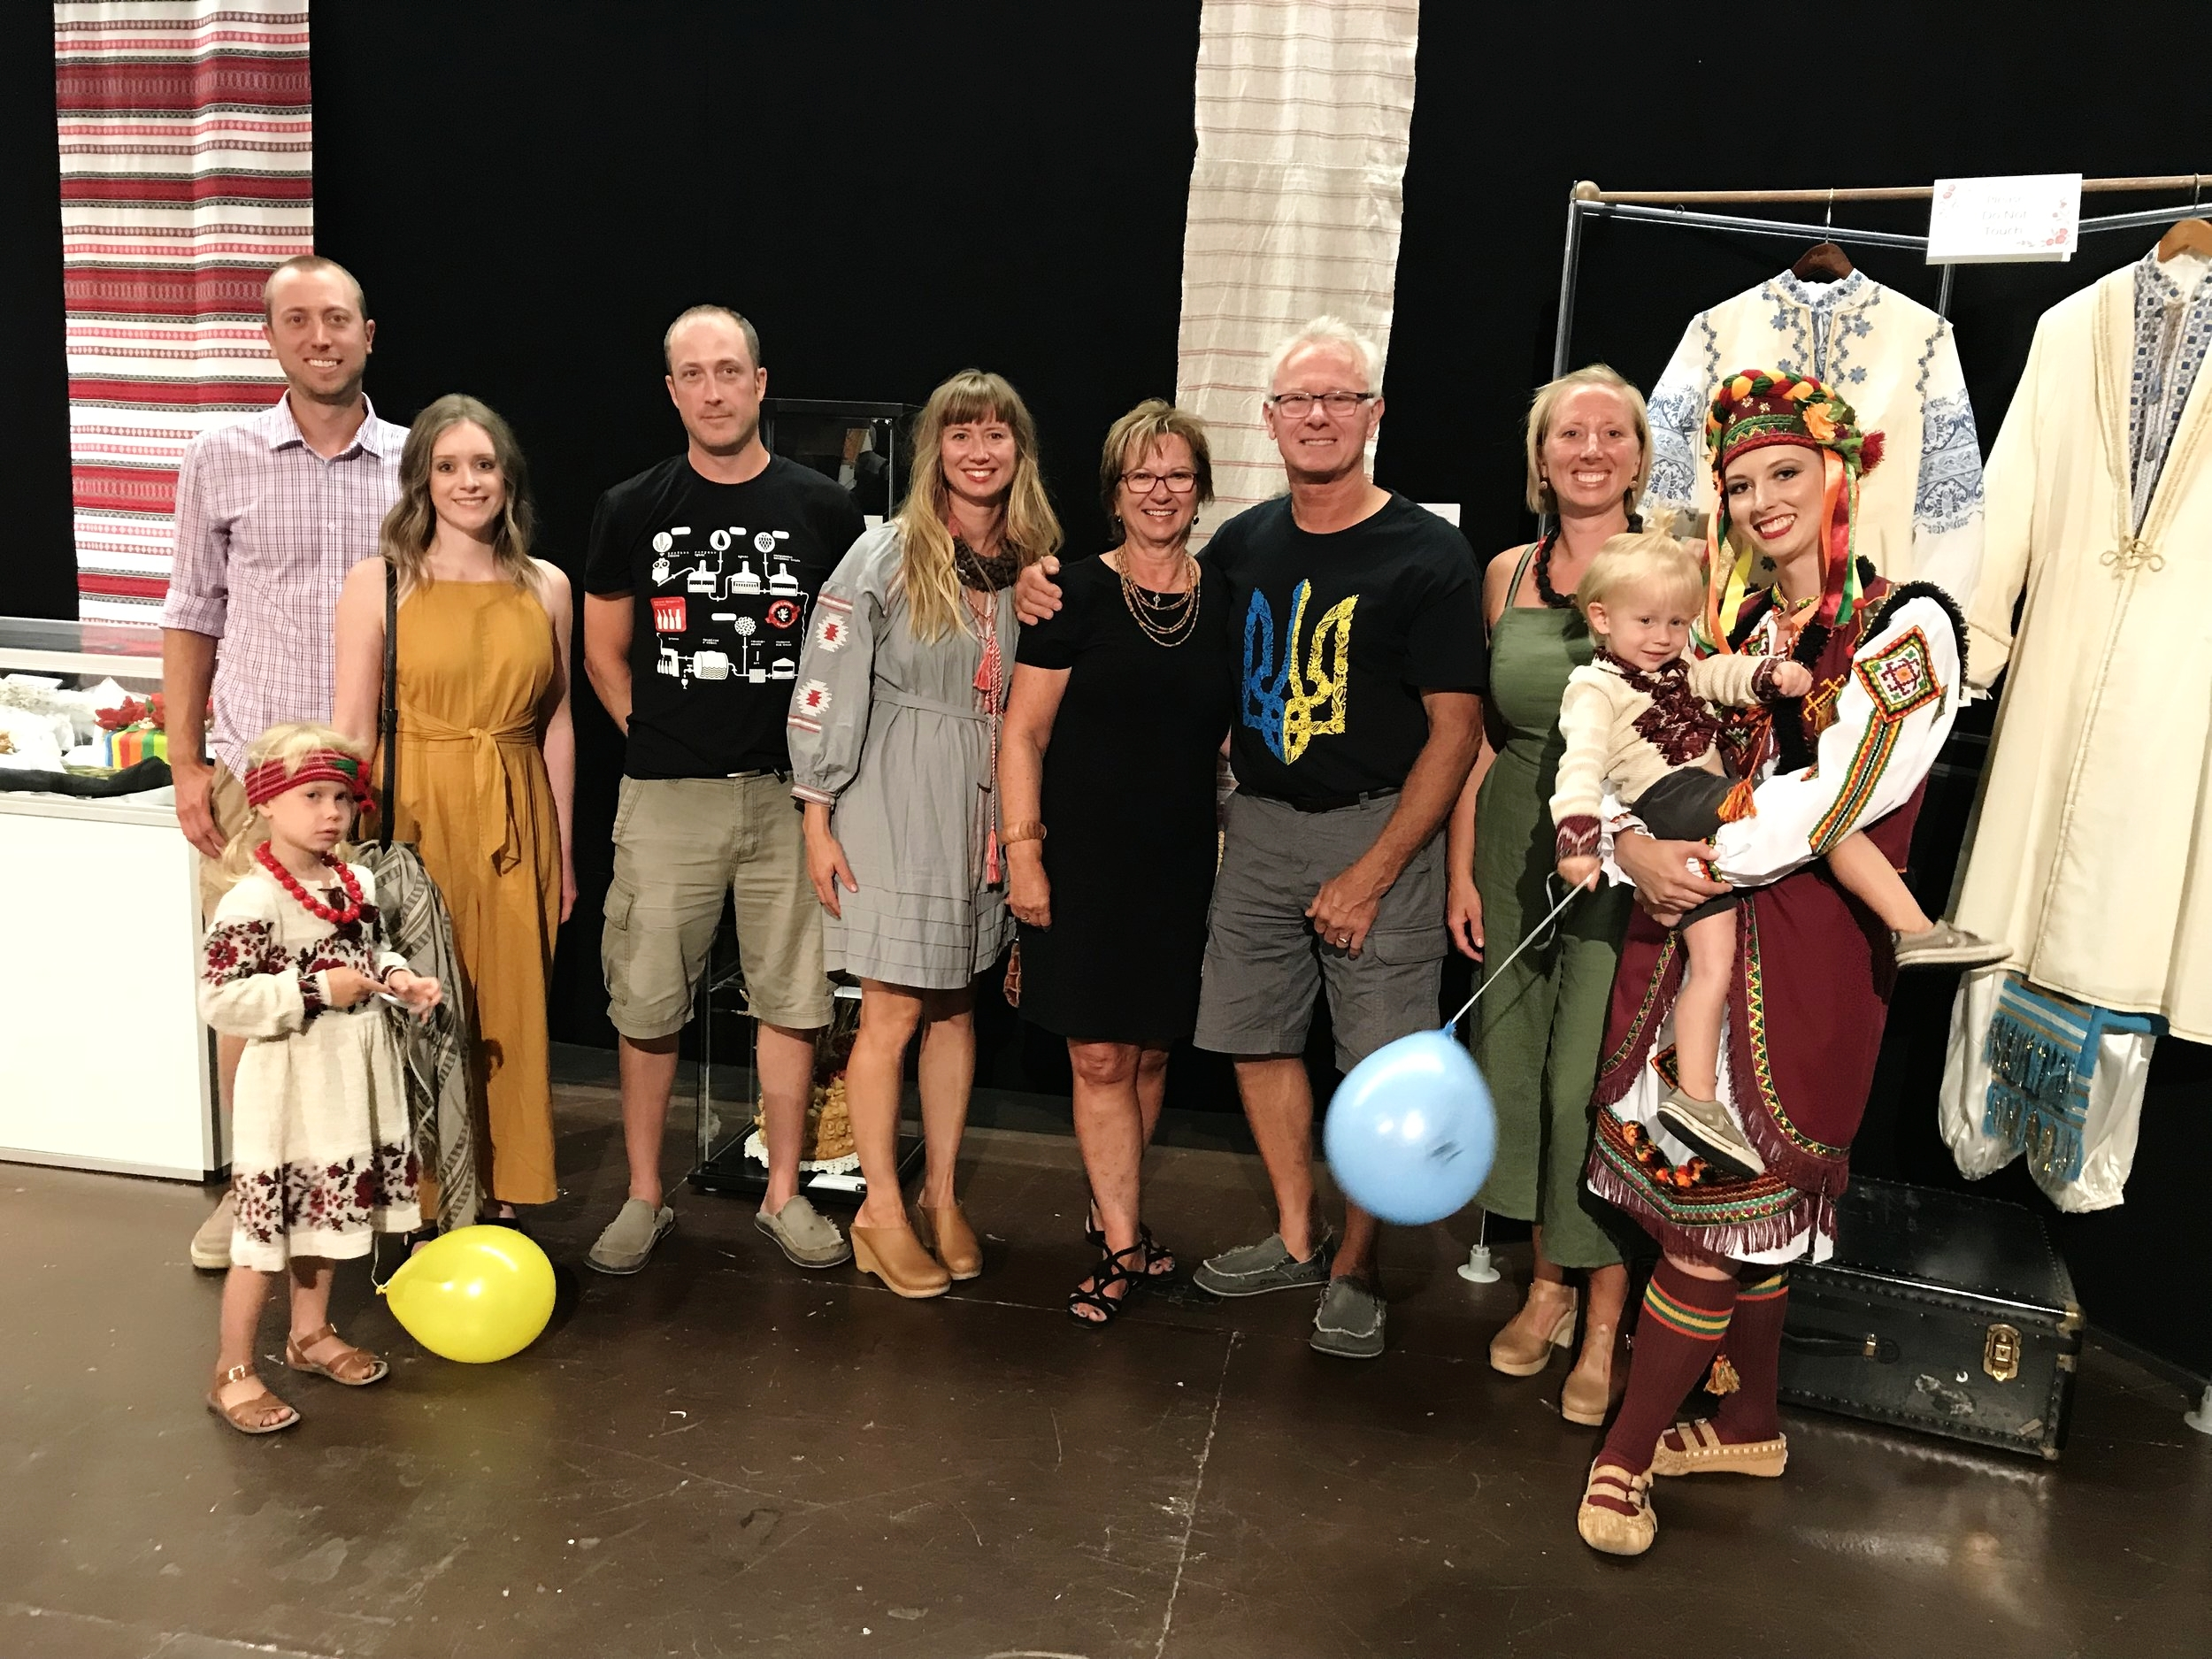 The whole crew came to watch me perform at Folklorama Aug. 8.